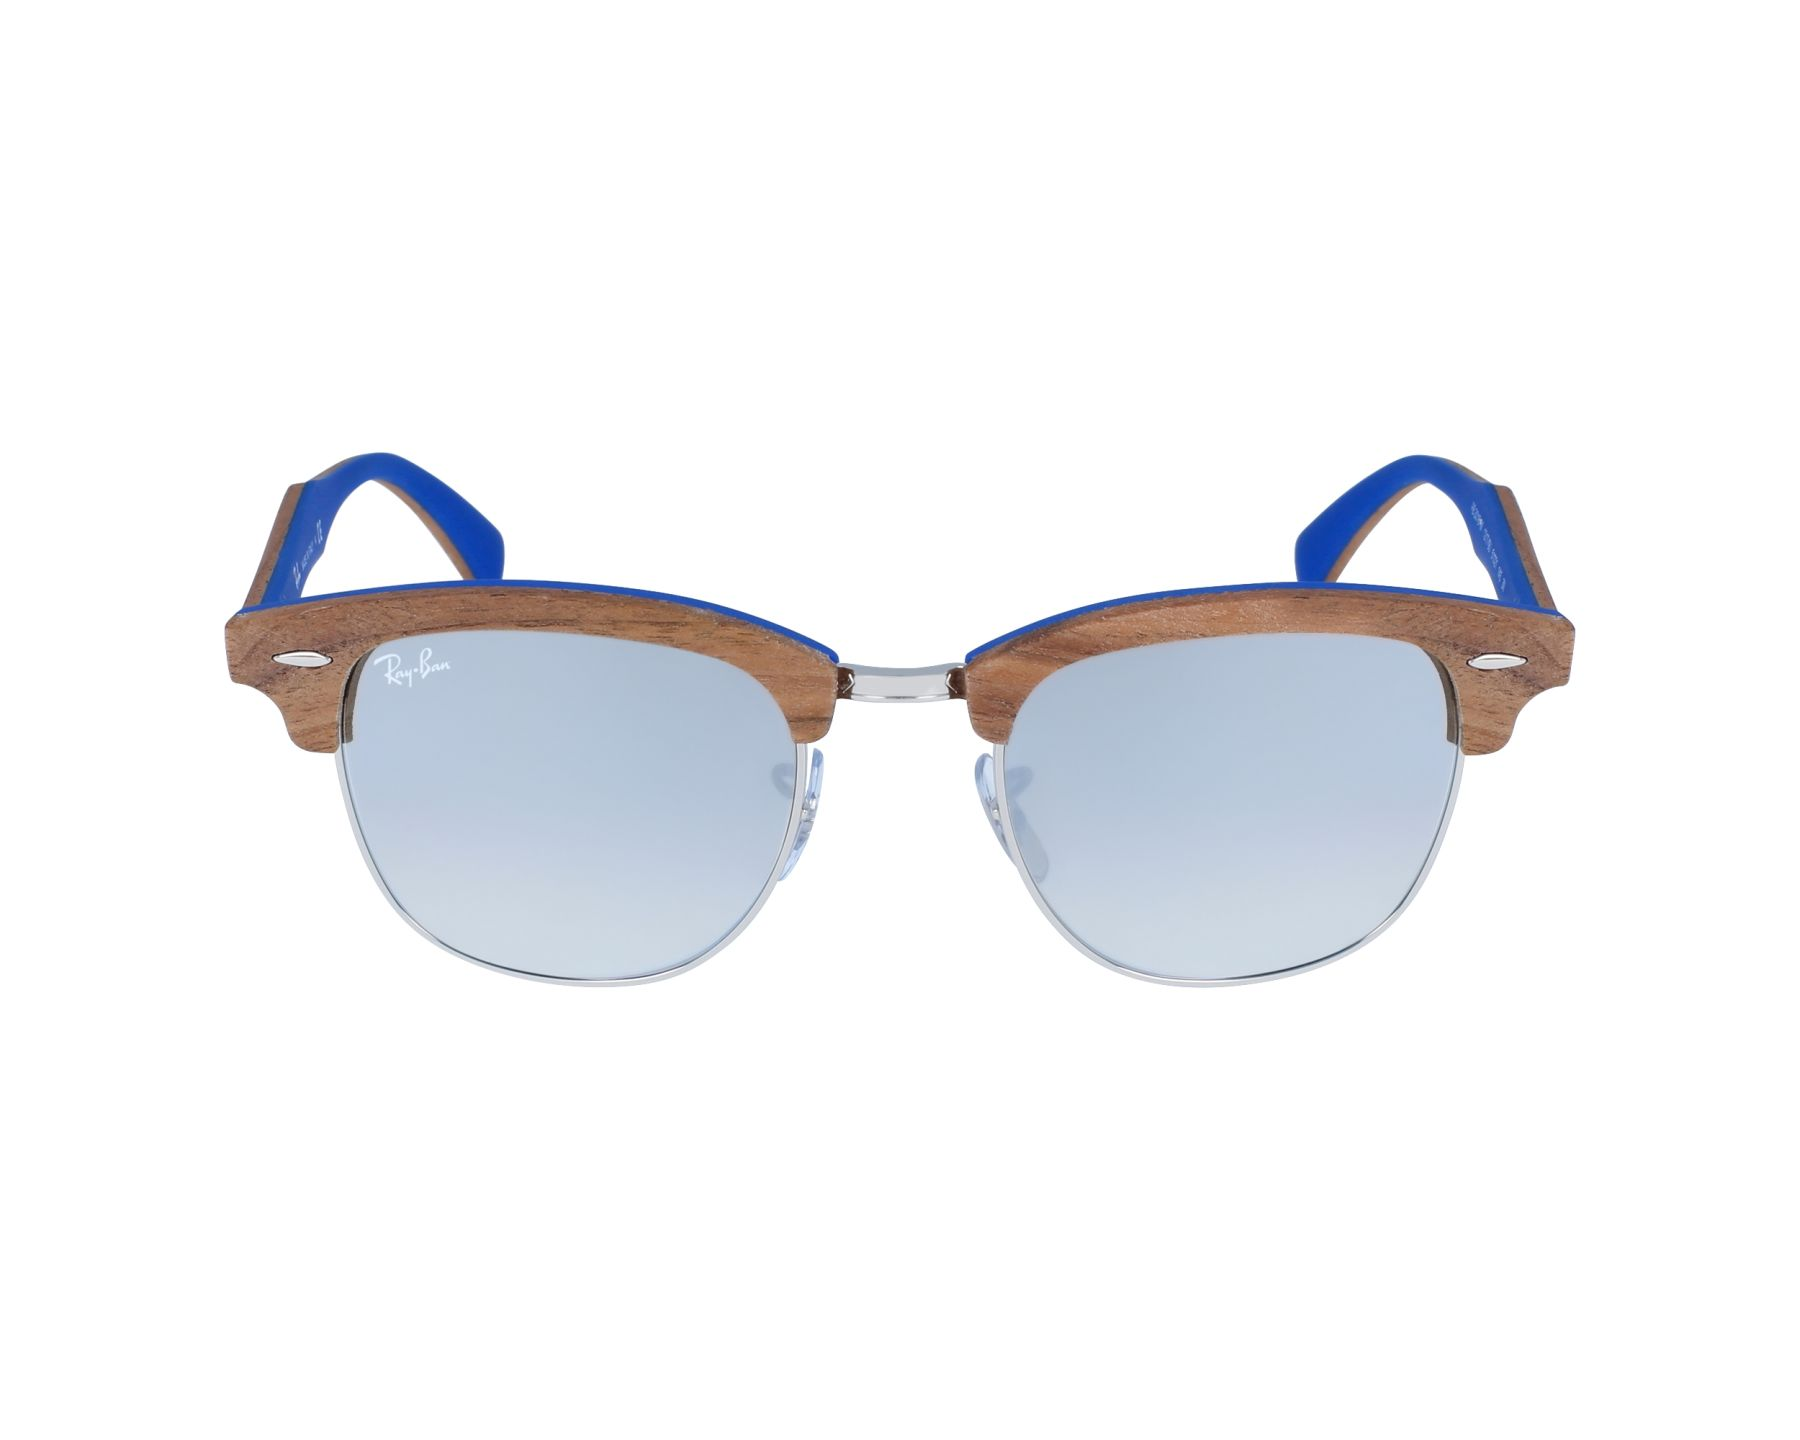 224757b1644a Sunglasses Ray-Ban RB-3016-M 1217 9U - Brown Blue profile